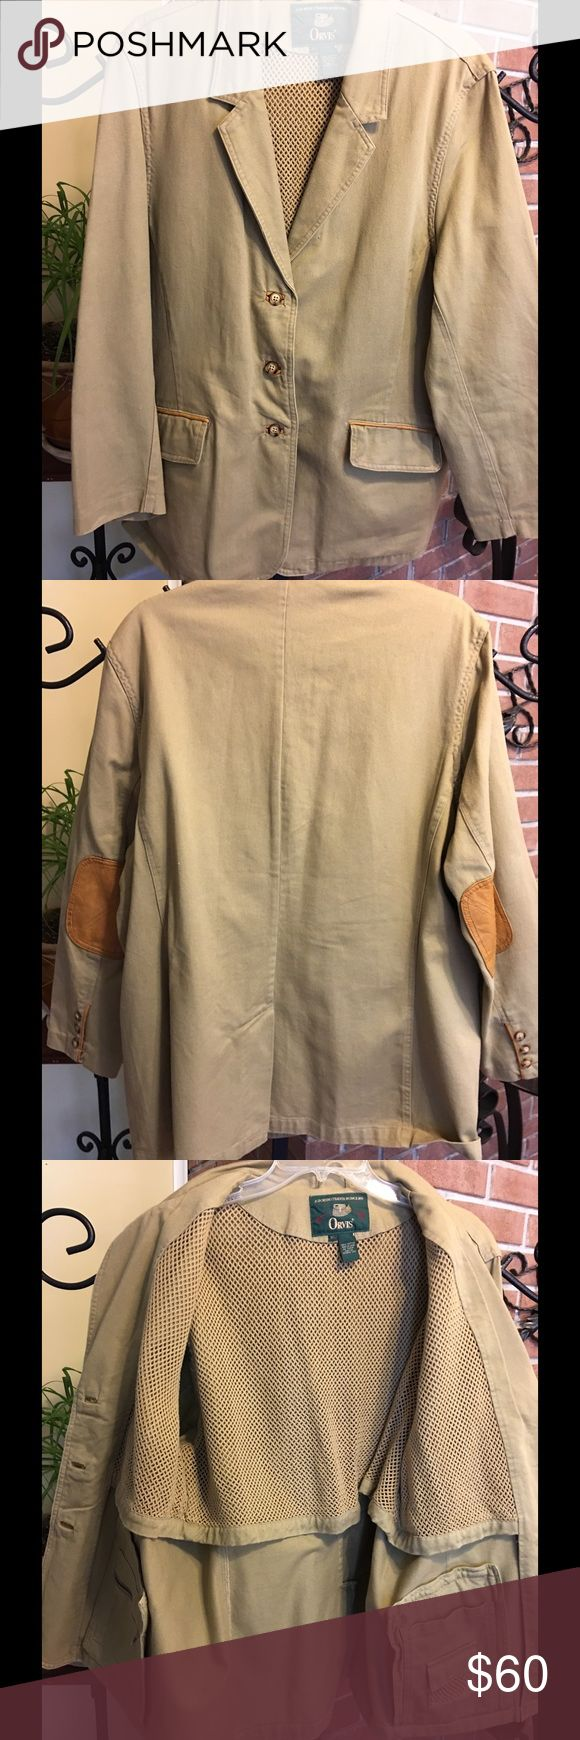 Men's sport jacket from Orvis Great condition Orvis Jackets & Coats